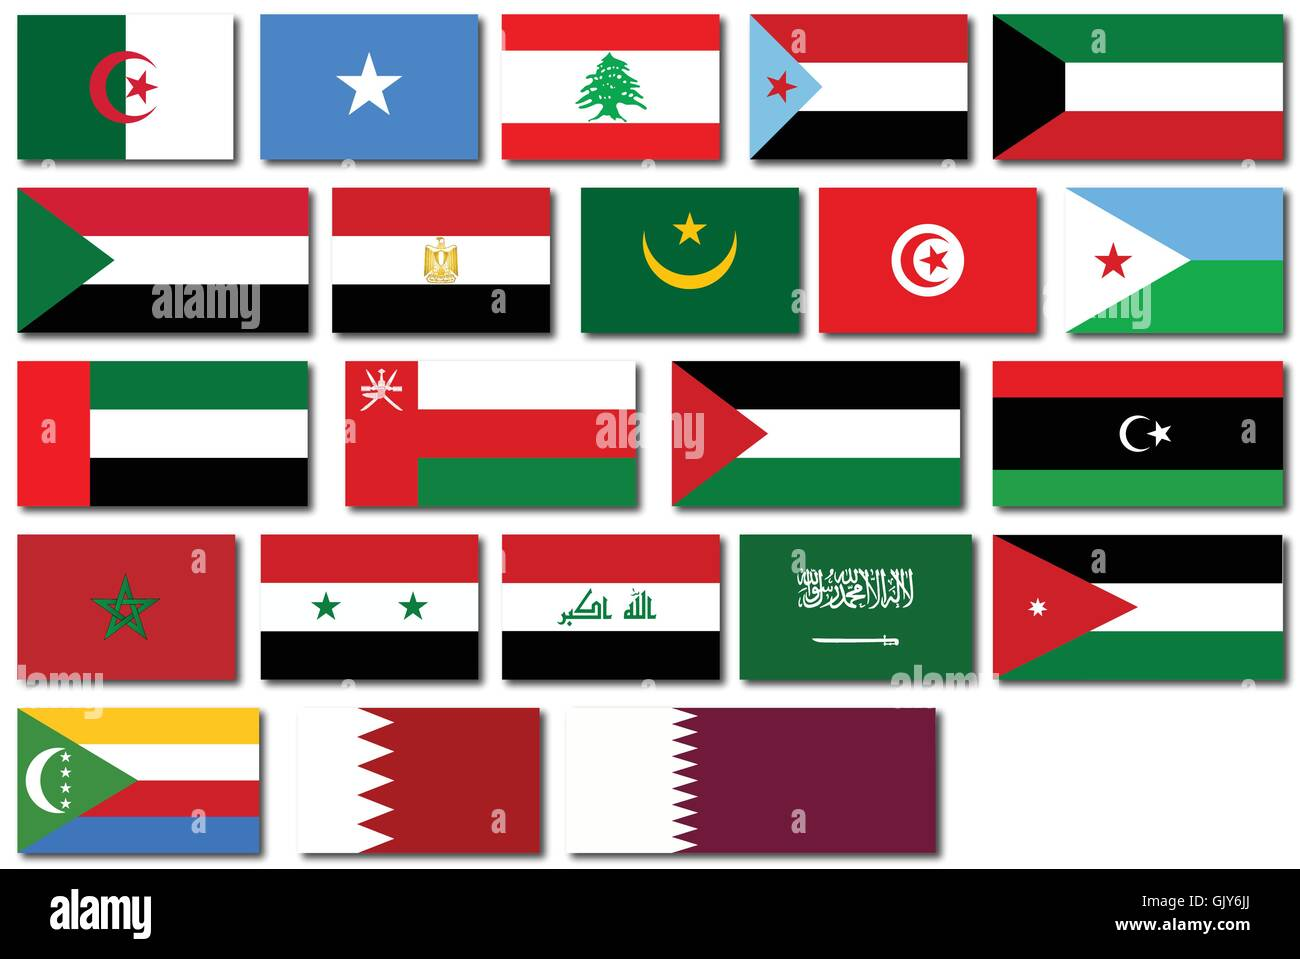 Flags of the Arab League - Stock Vector